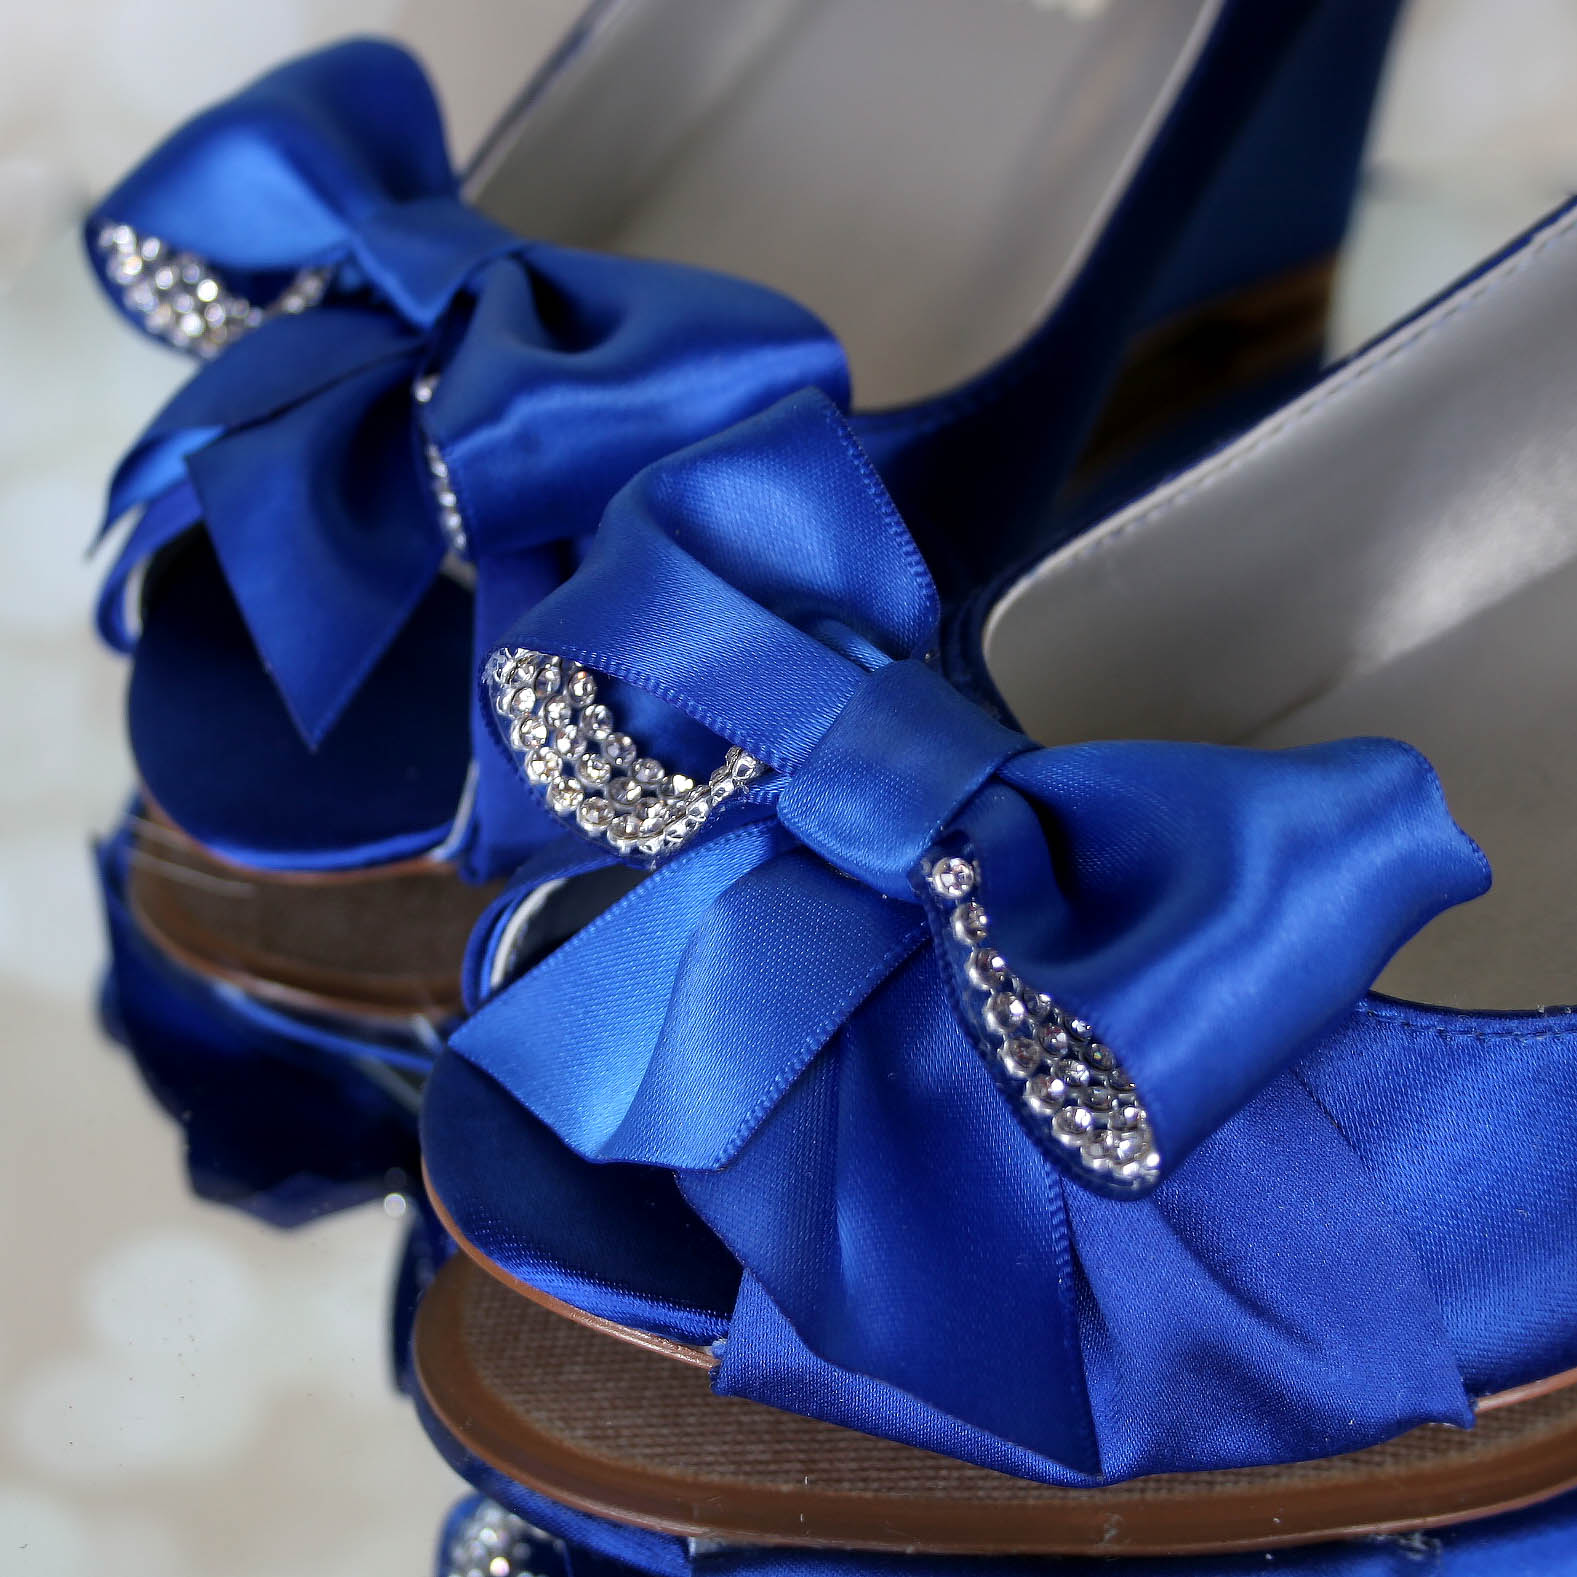 Blue Wedge Wedding Shoes with Crystal Accented Bow Open Toe Custom Wedding Shoes by Ellie Wren